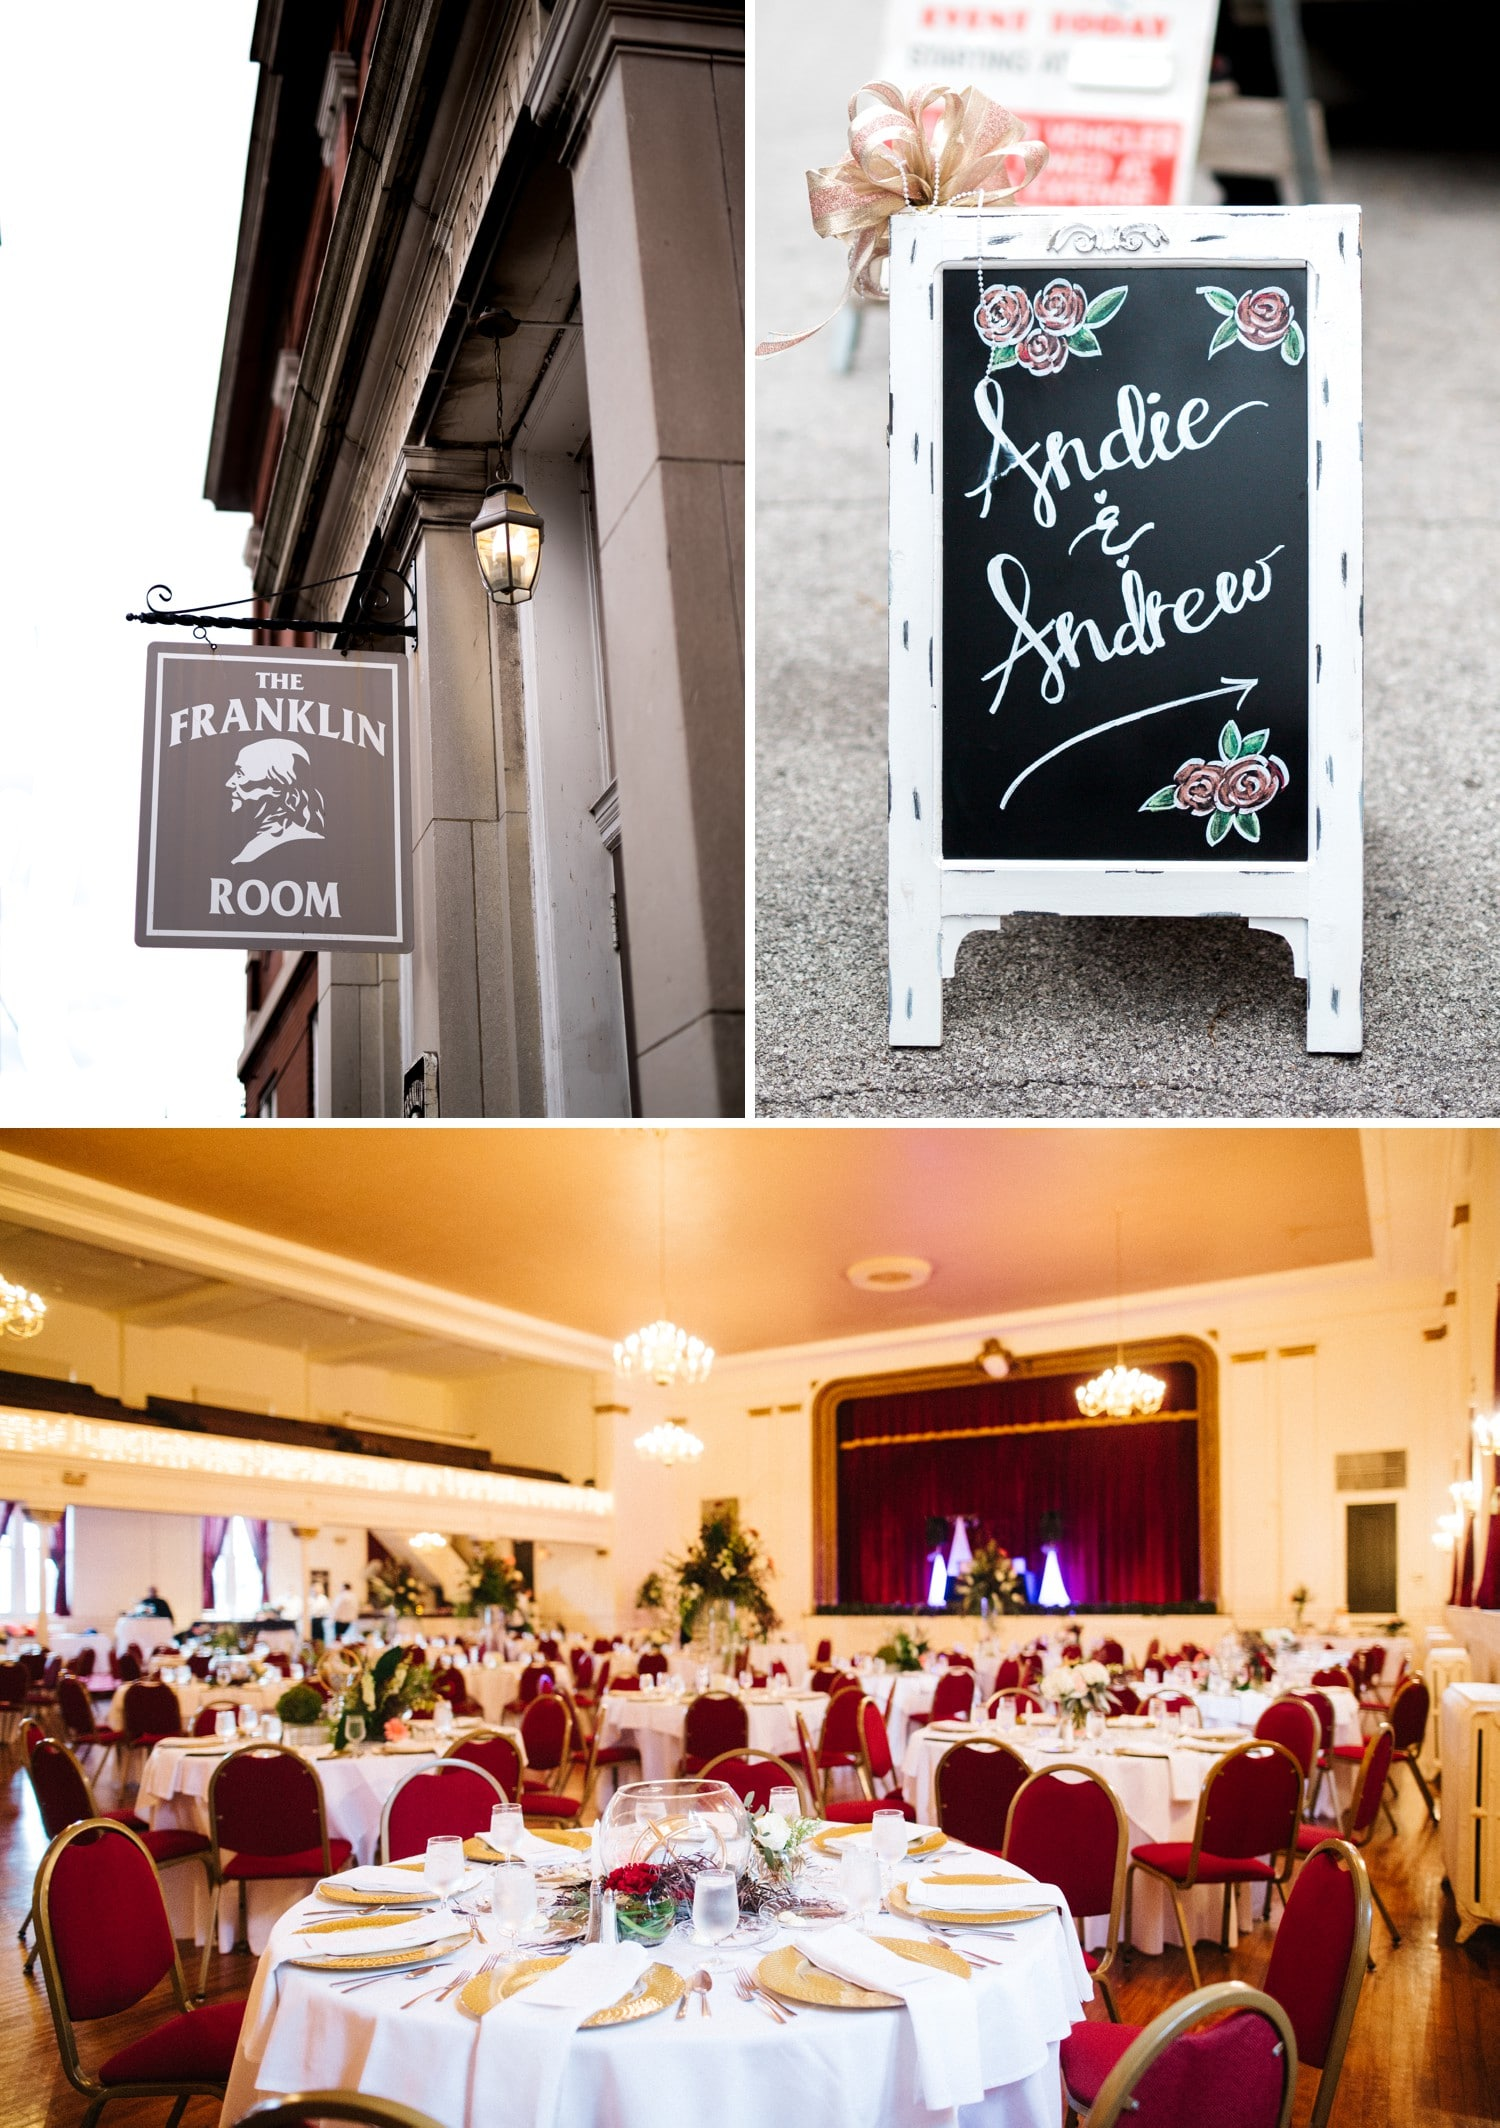 St Louis The Franklin Room Wedding Andie Andrew Nashville